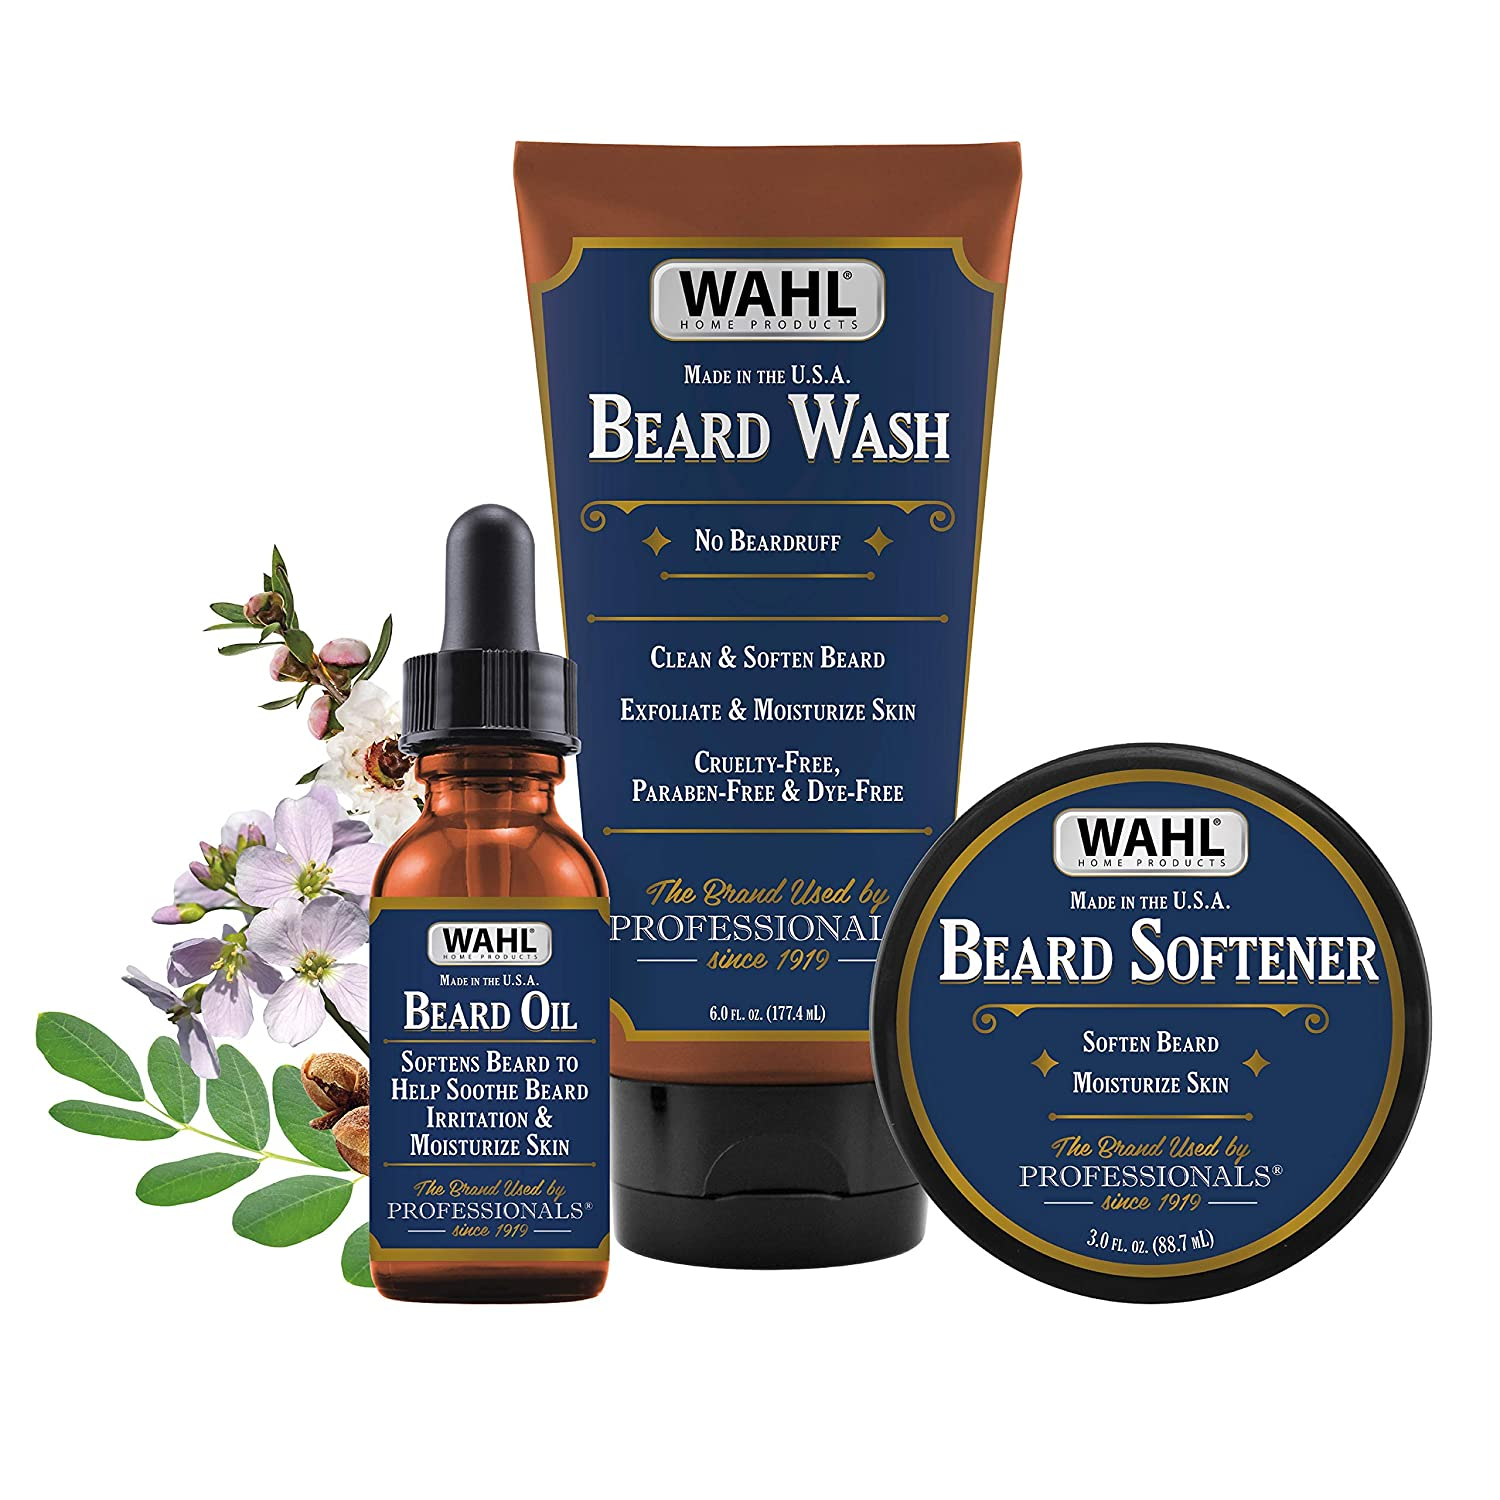 Wahl Beard Oil, Wash & Softener Combo Kit with Essential Oils for Men – Moisturizes, Exfoliates & Soothes Skin Irritation with Manuka Oil, Meadowfoam Seed Oil, Clove Oil & Moringa Oil